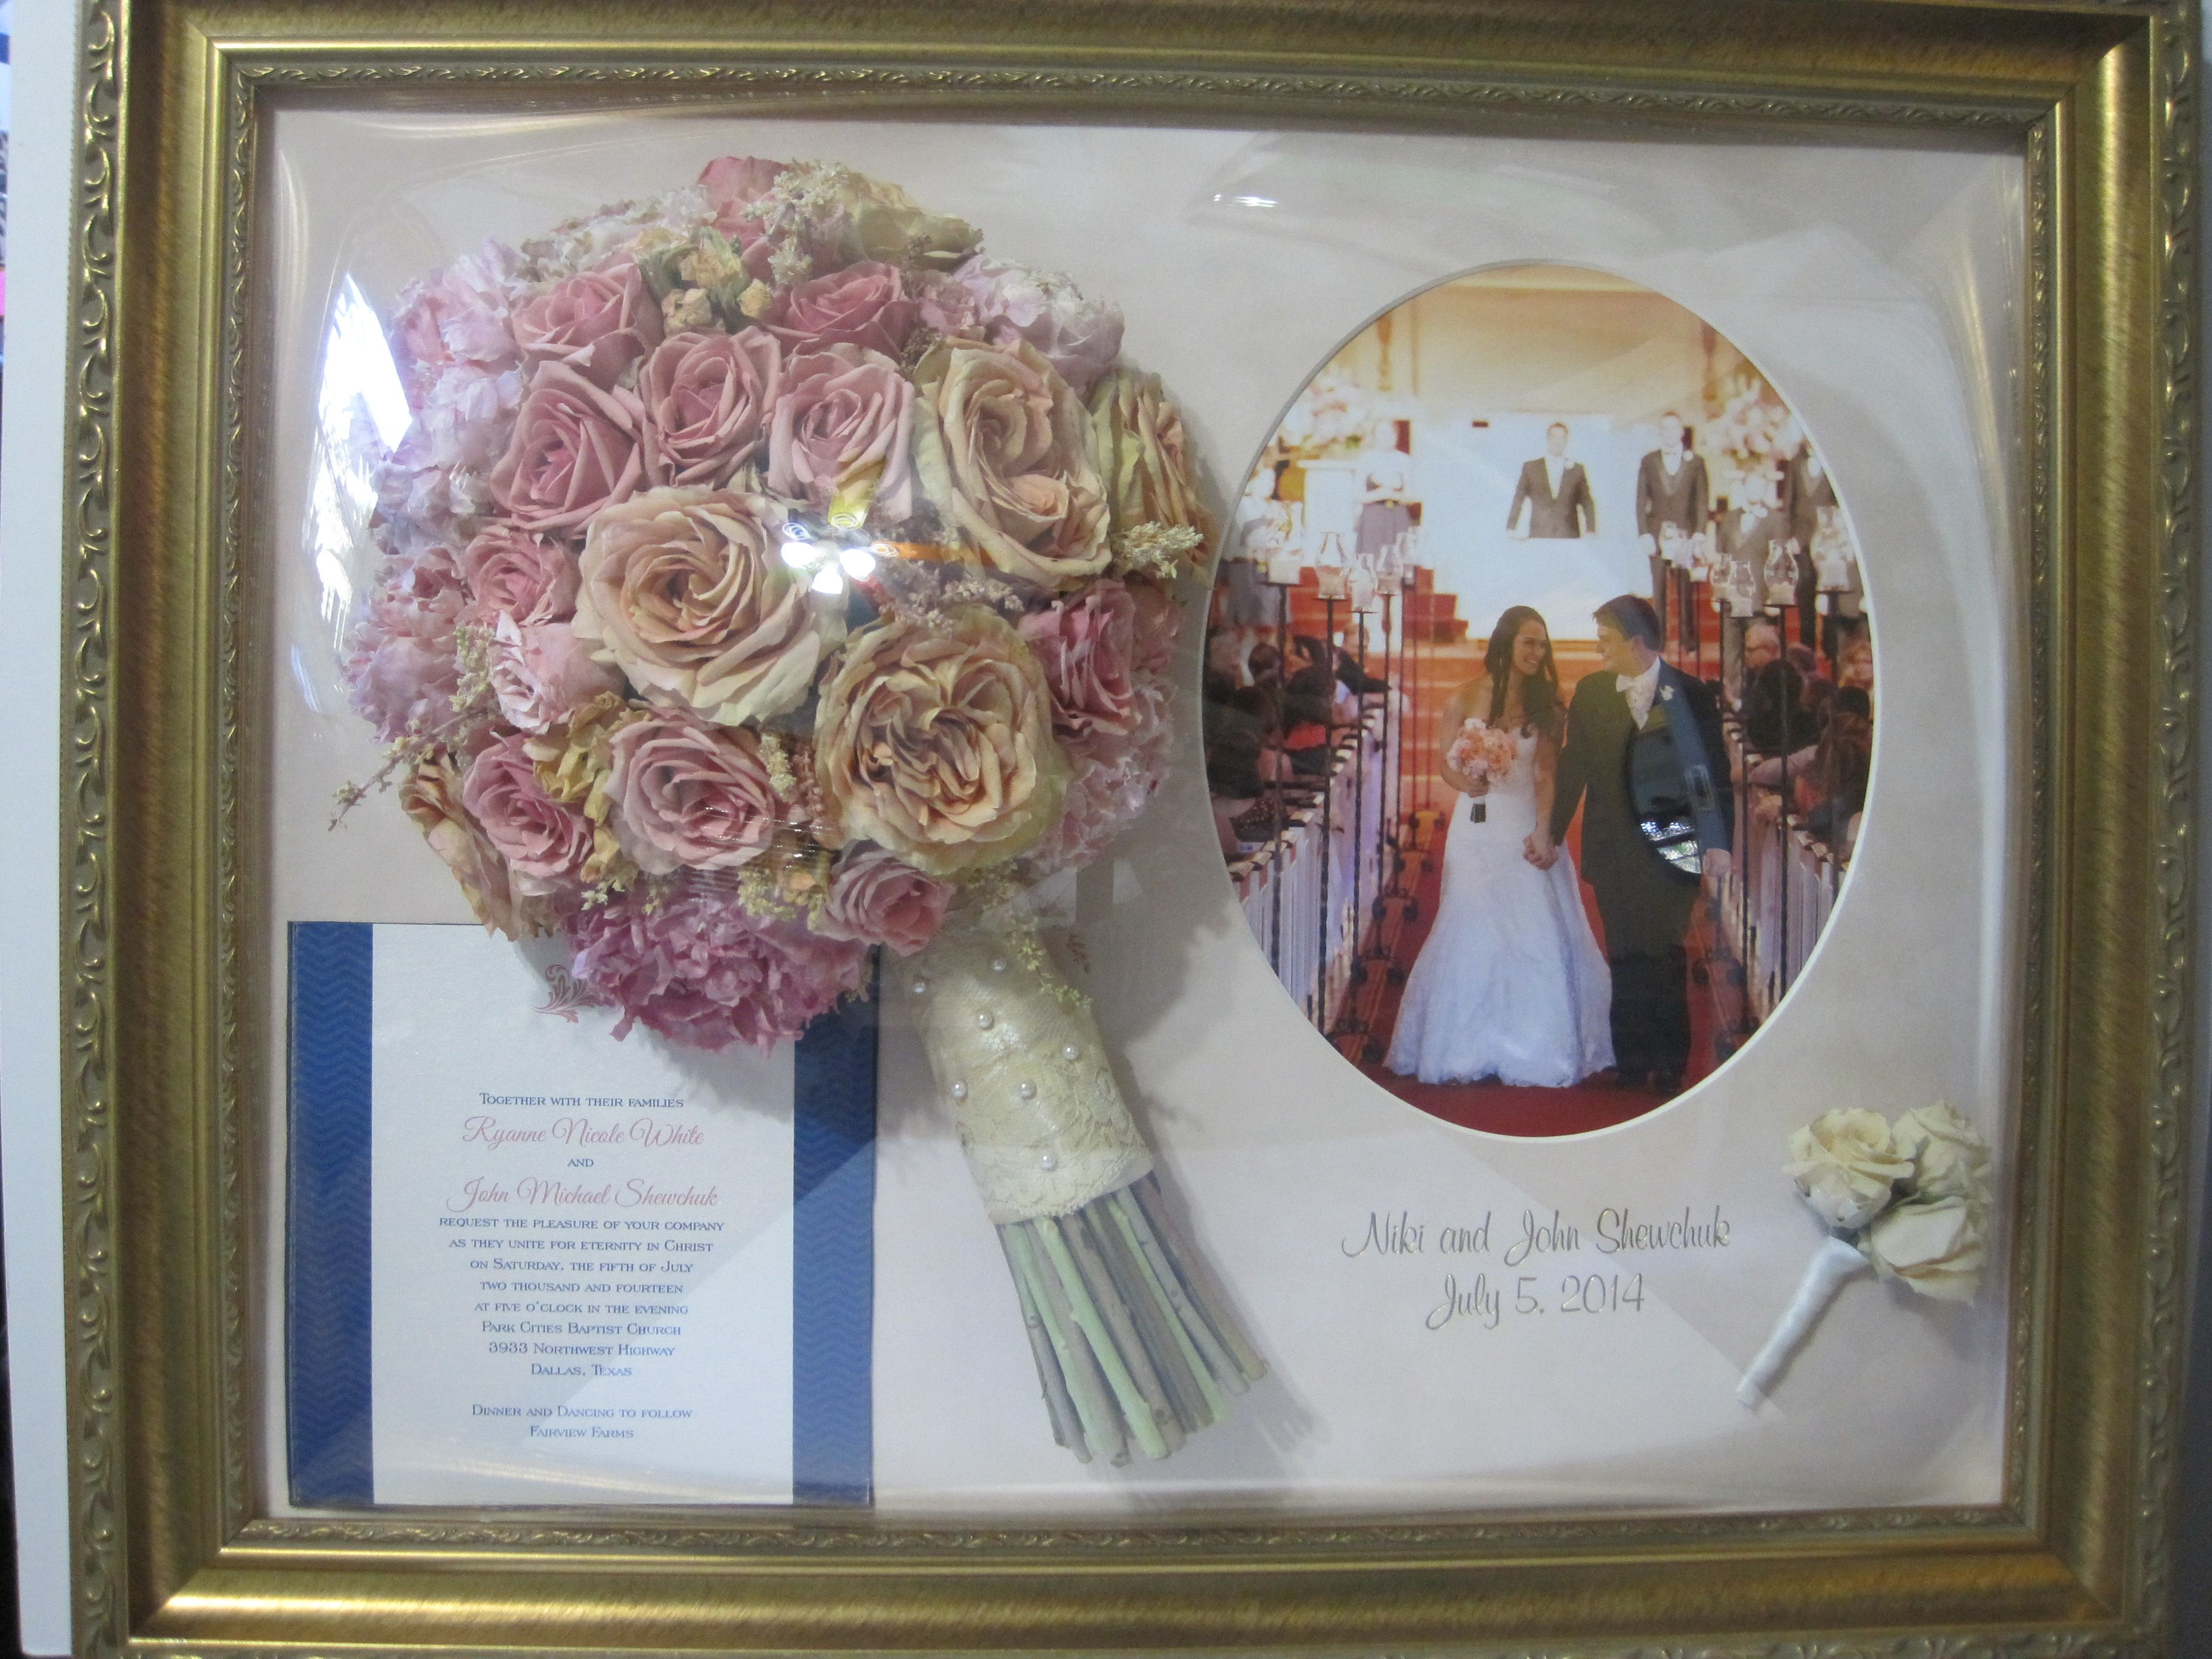 preserved wedding bouquet framed with invitation, 8x10 picture with oval opening, boutonniere, and engraving in an antique gold frame.